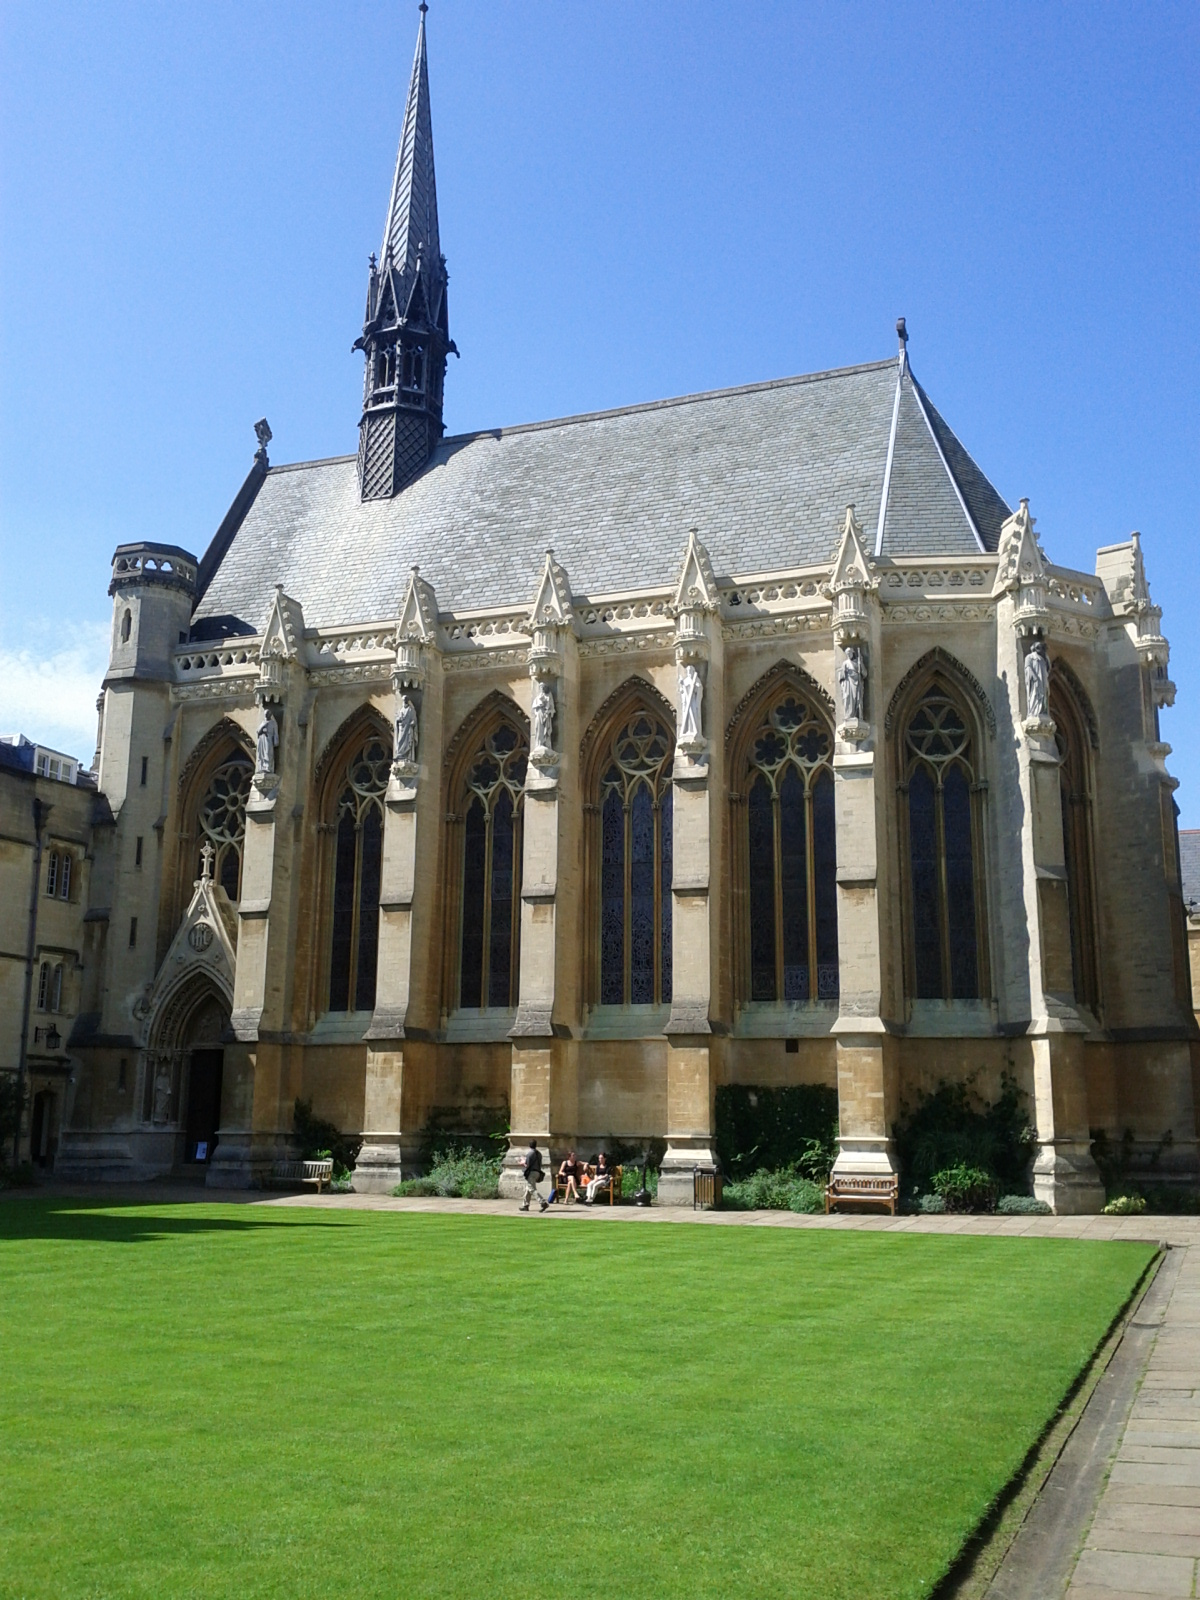 online creative writing courses oxford university